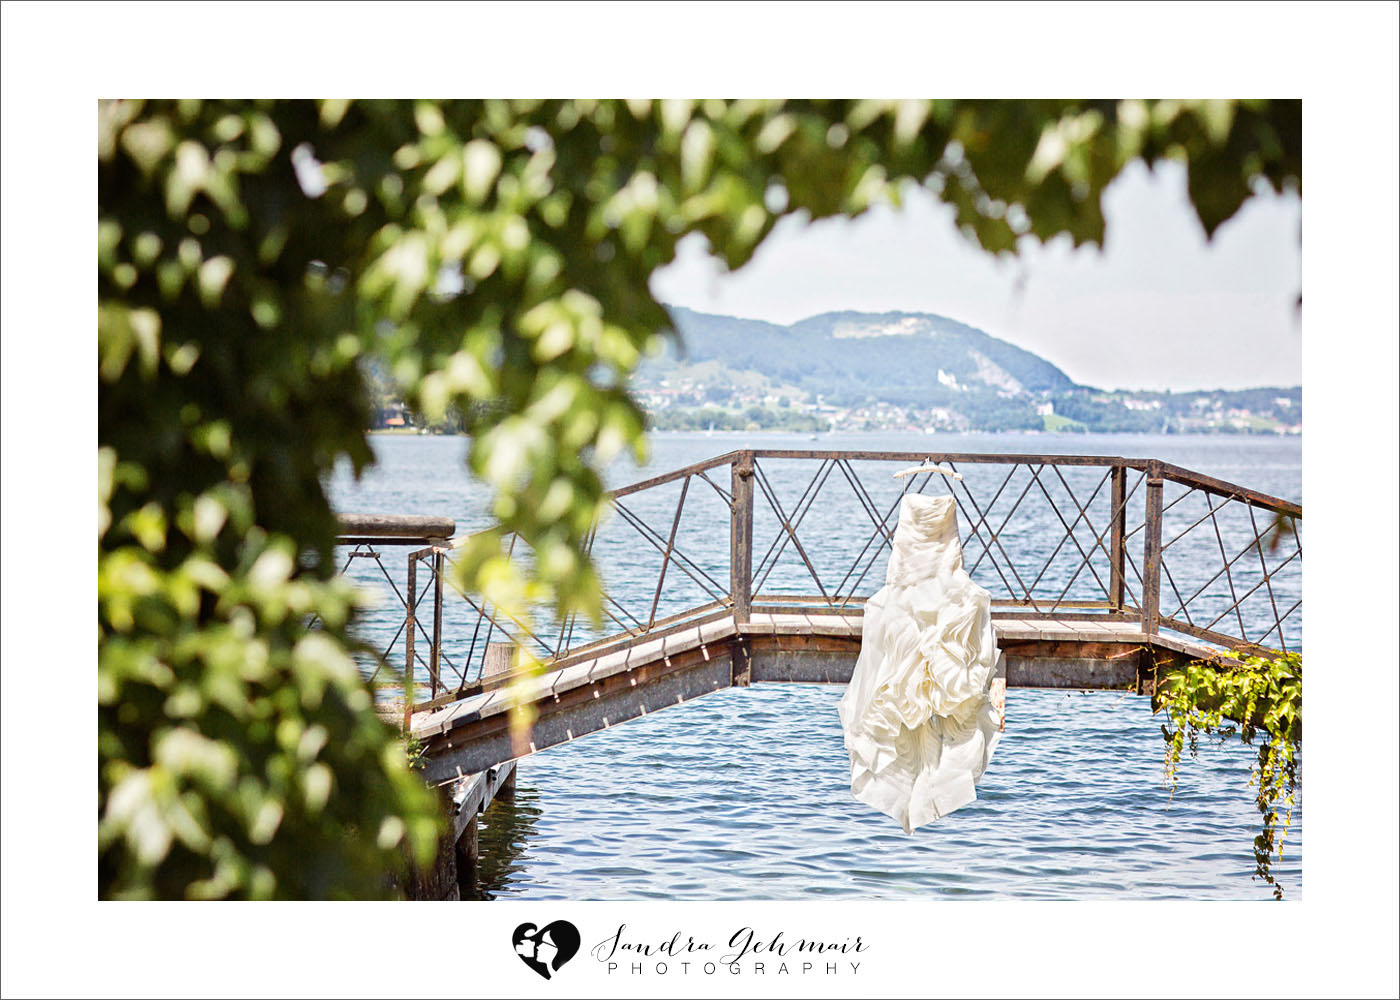 001_heiraten_am_see_spitzvilla_sandra_gehmair